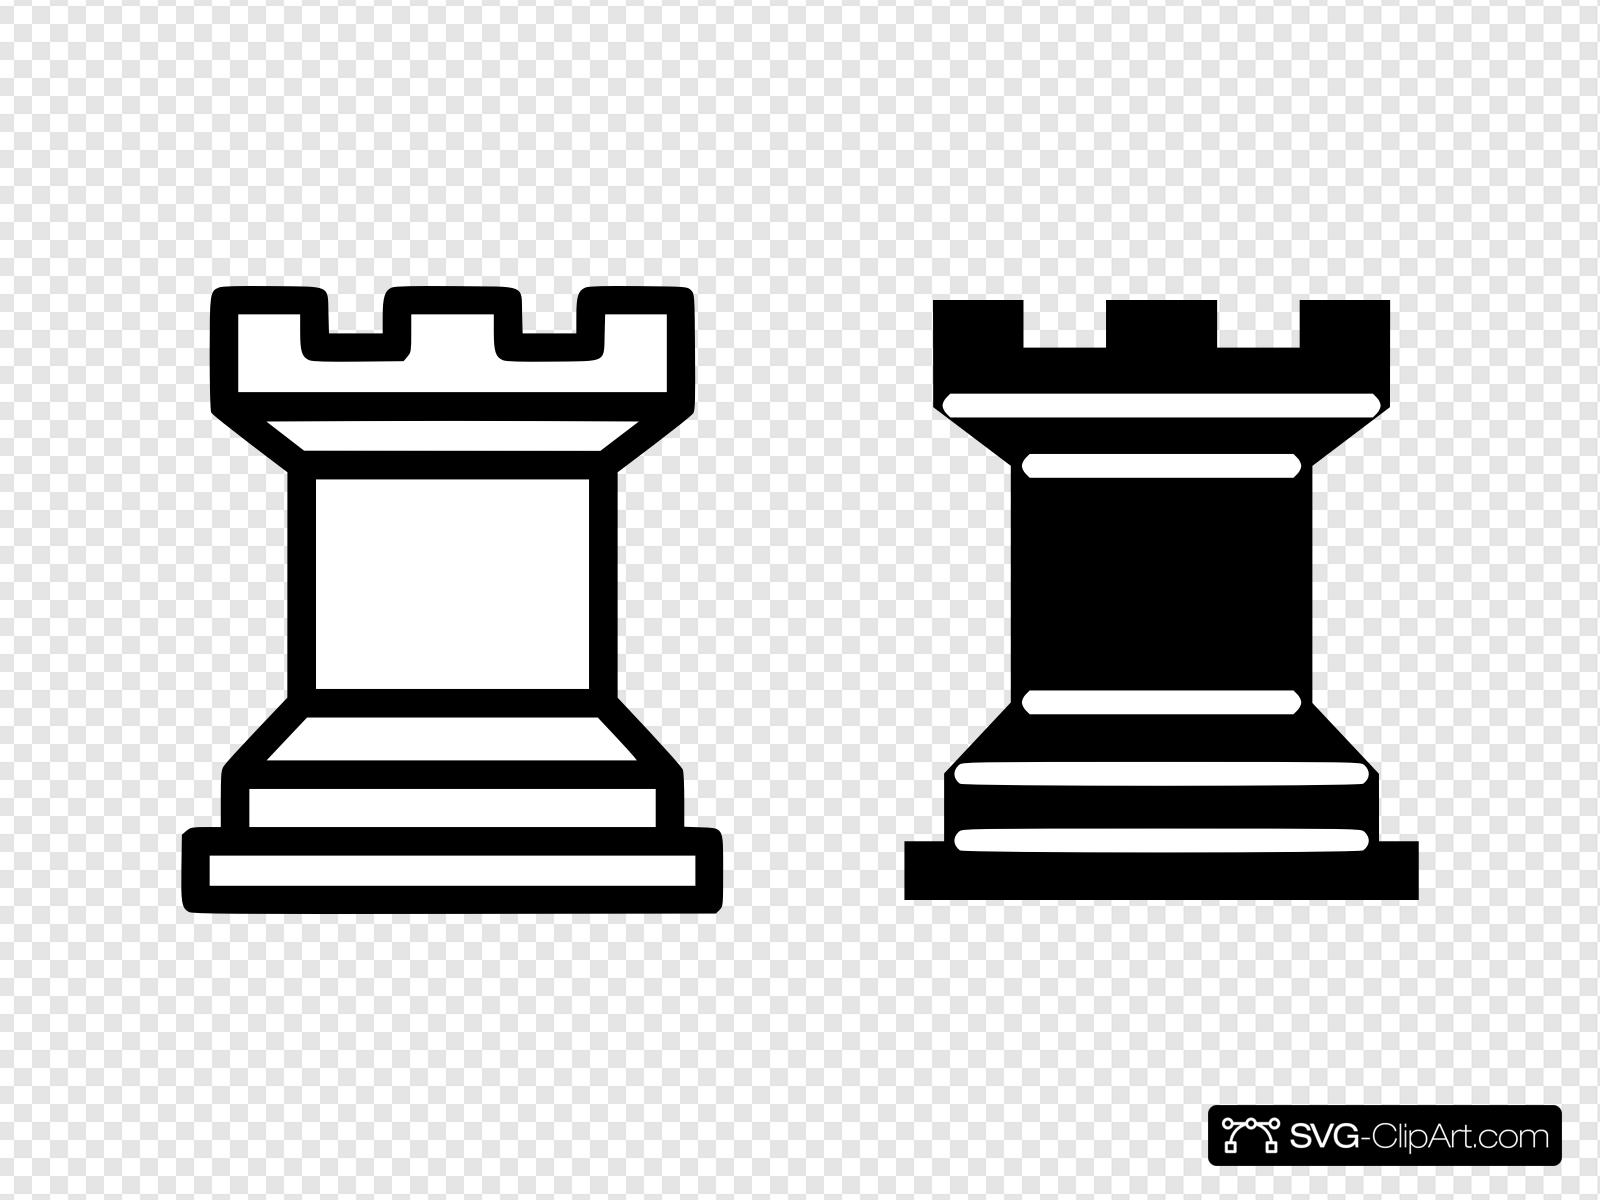 Chess clipart black and white royalty free library Black And White Simple Chess Pieces Clip art, Icon and SVG - SVG Clipart royalty free library